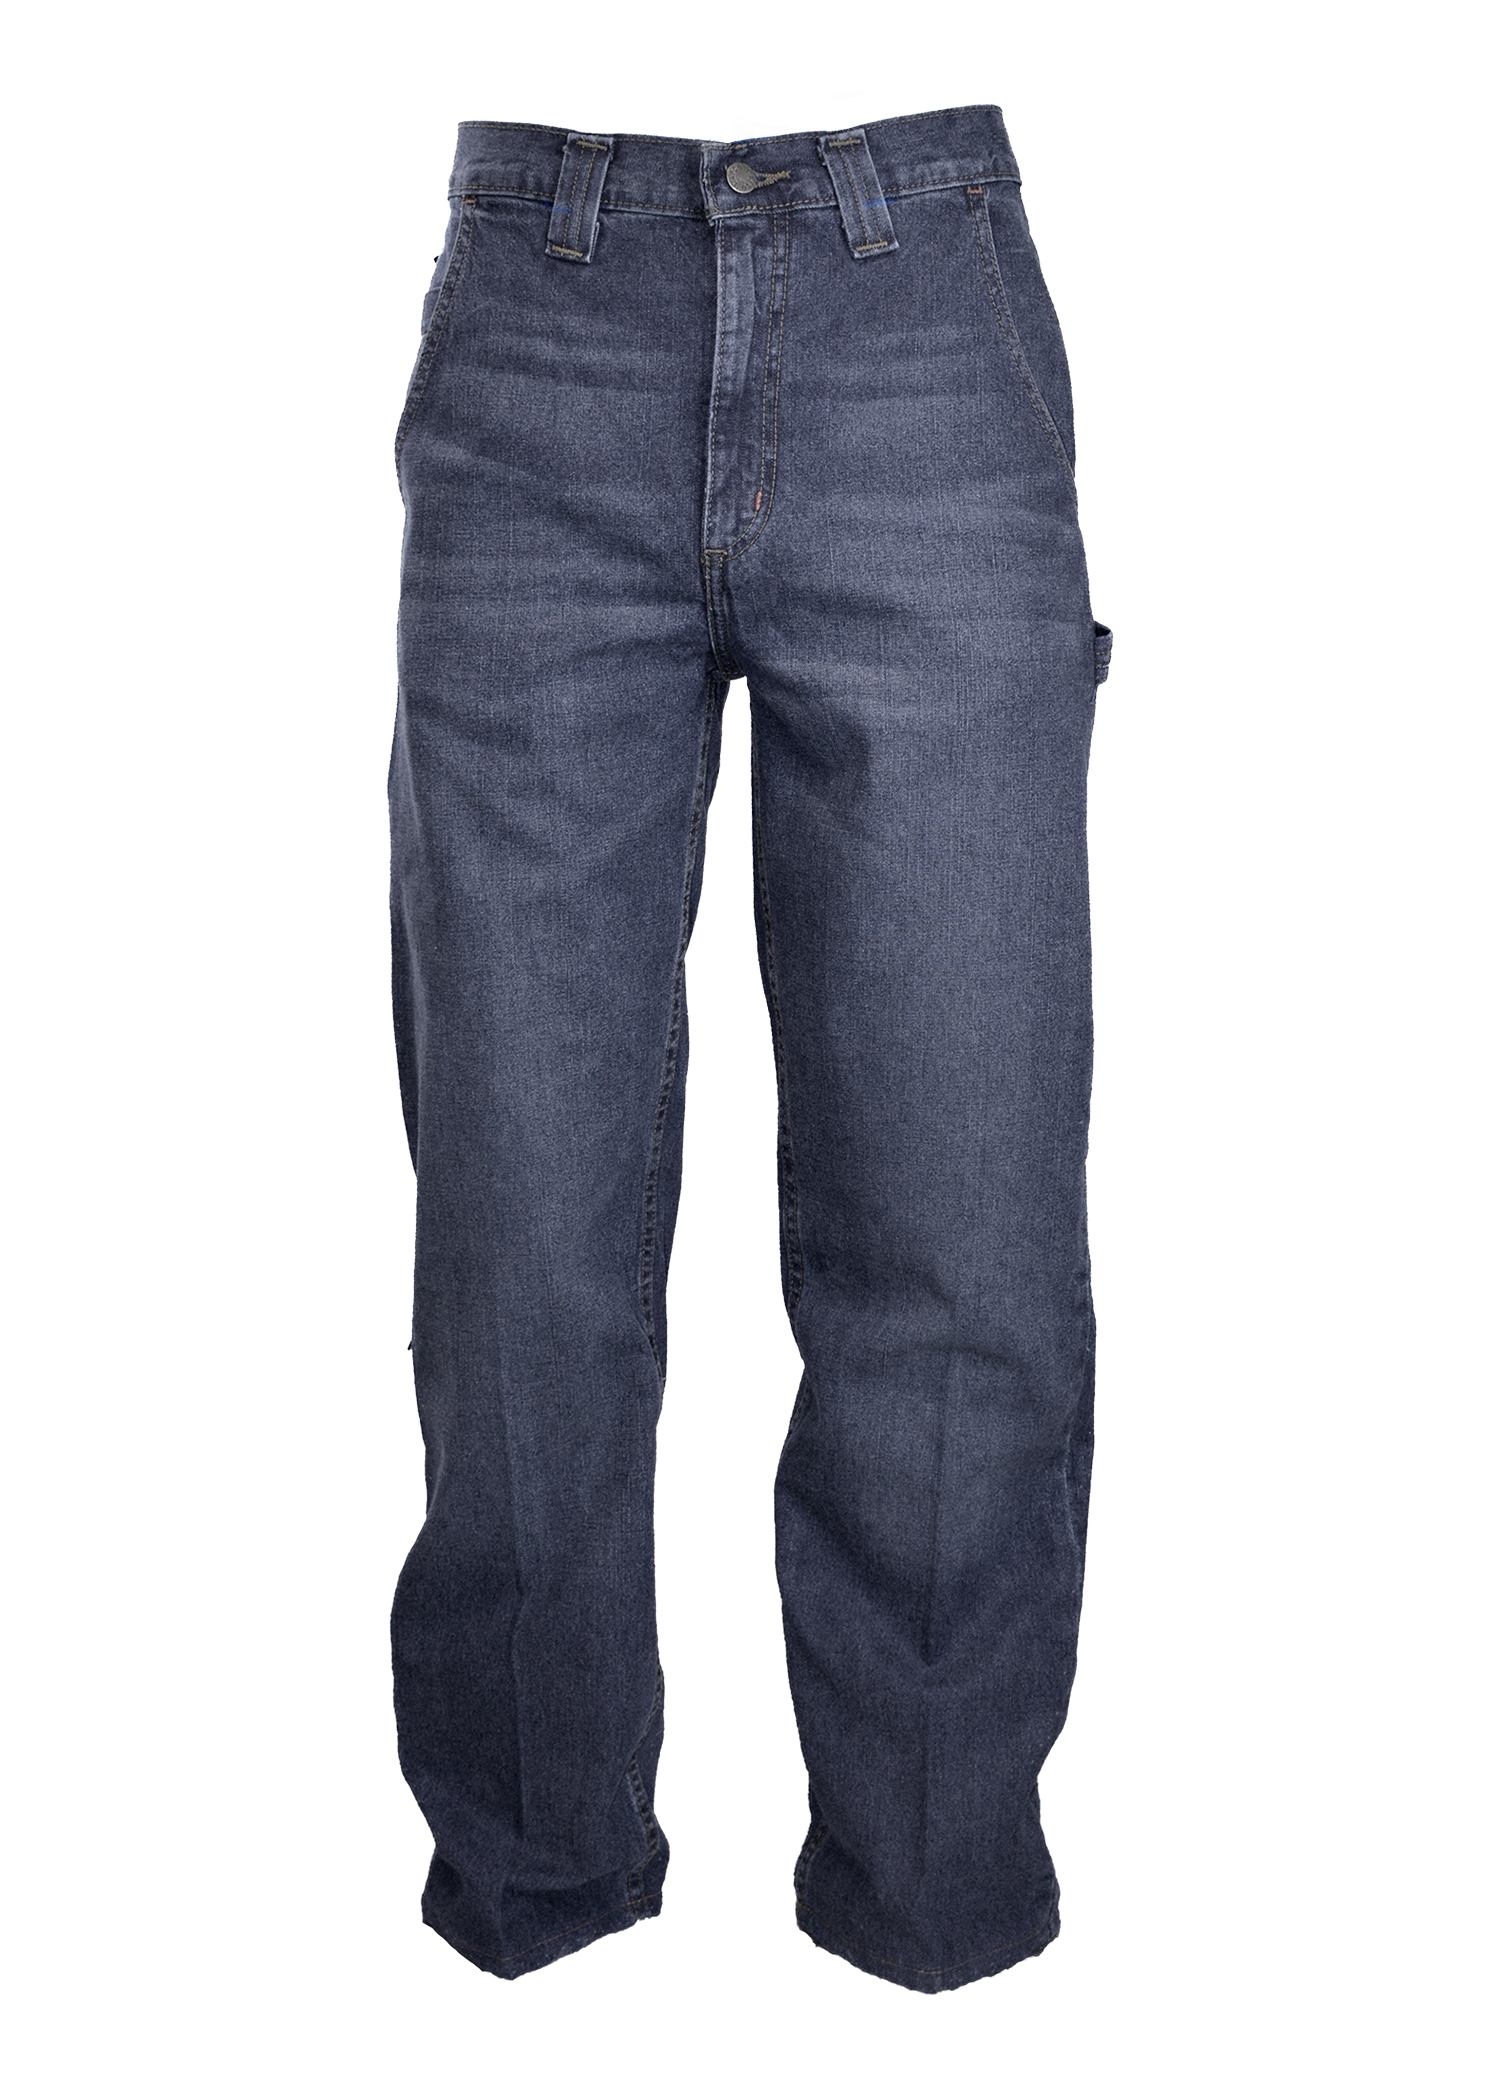 10oz. FR Modern Carpenter Jeans | 100% Cotton-Lapco